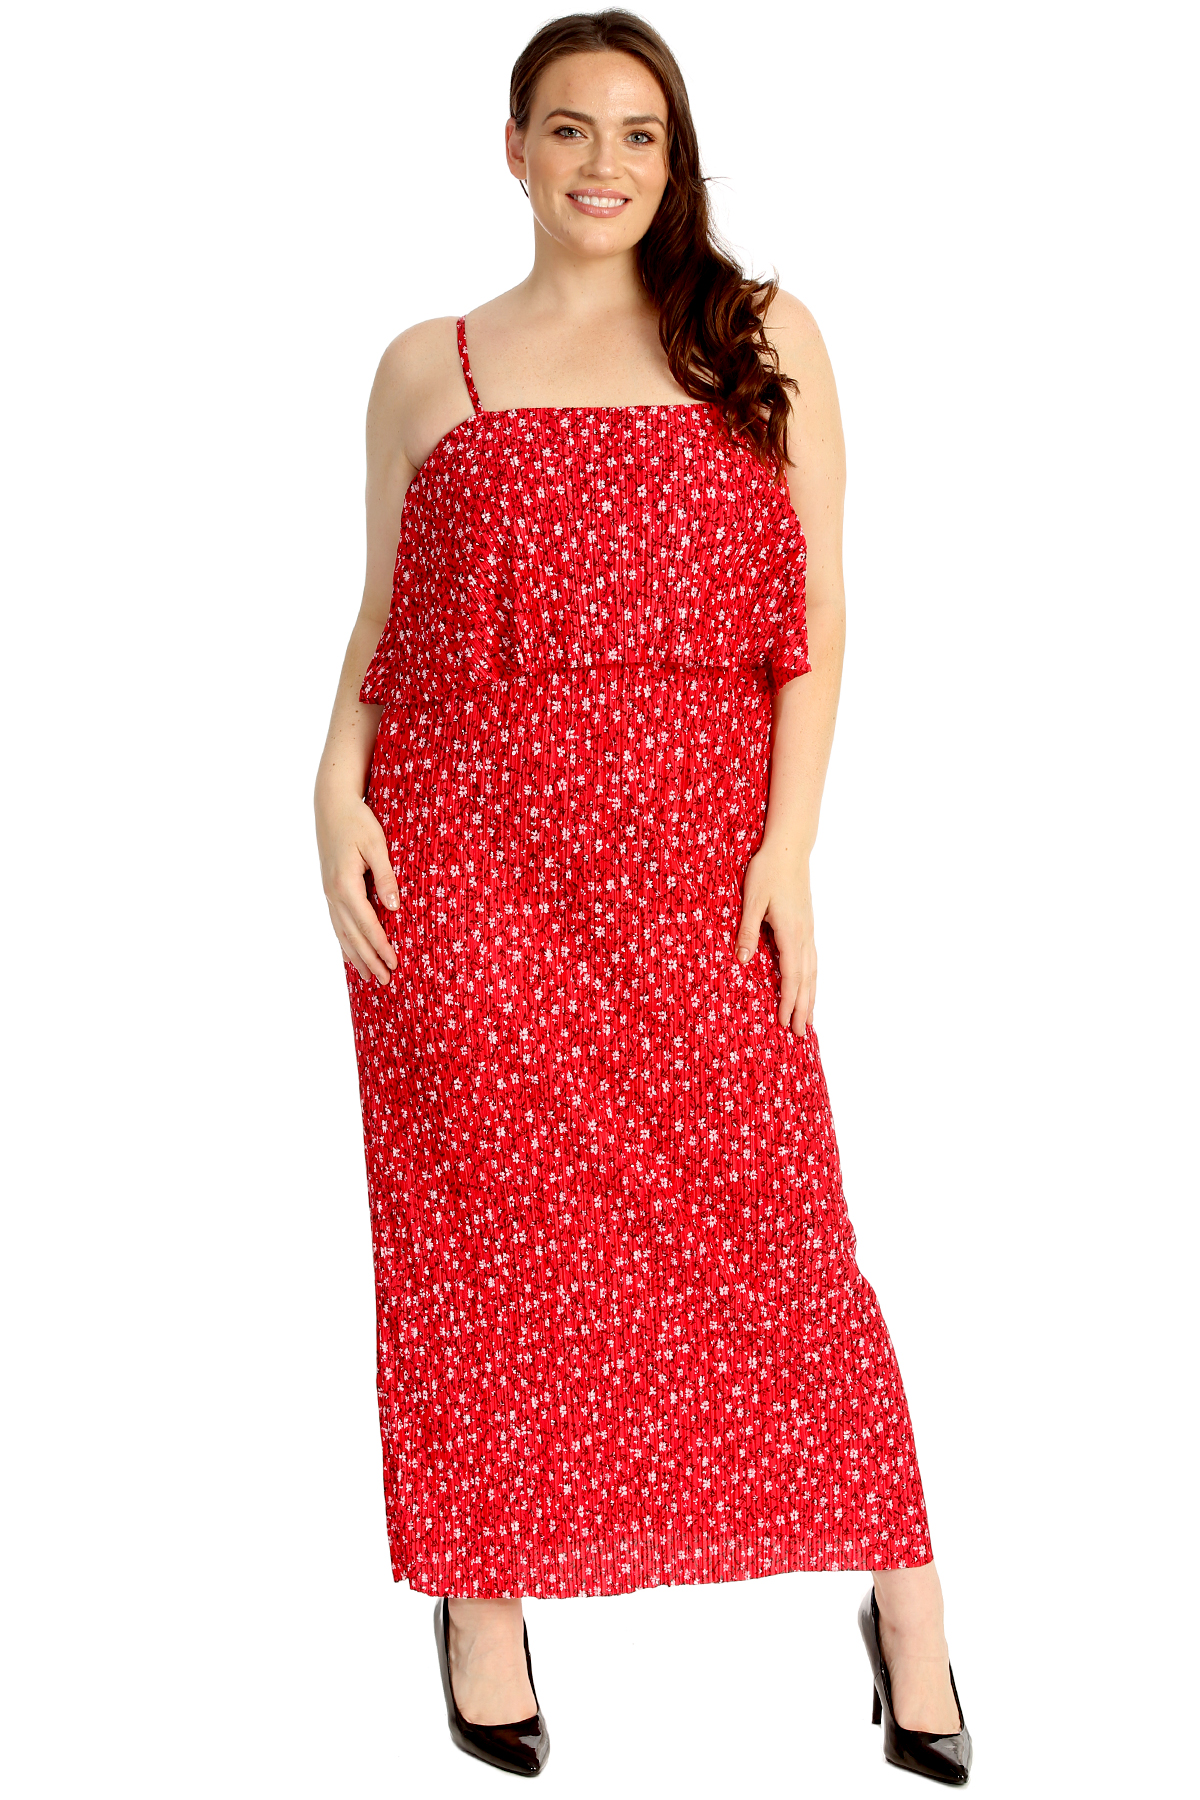 Details about New Ladies Plus Size Maxi Dress Womens Sleeveless Long Small  Floral Print Party